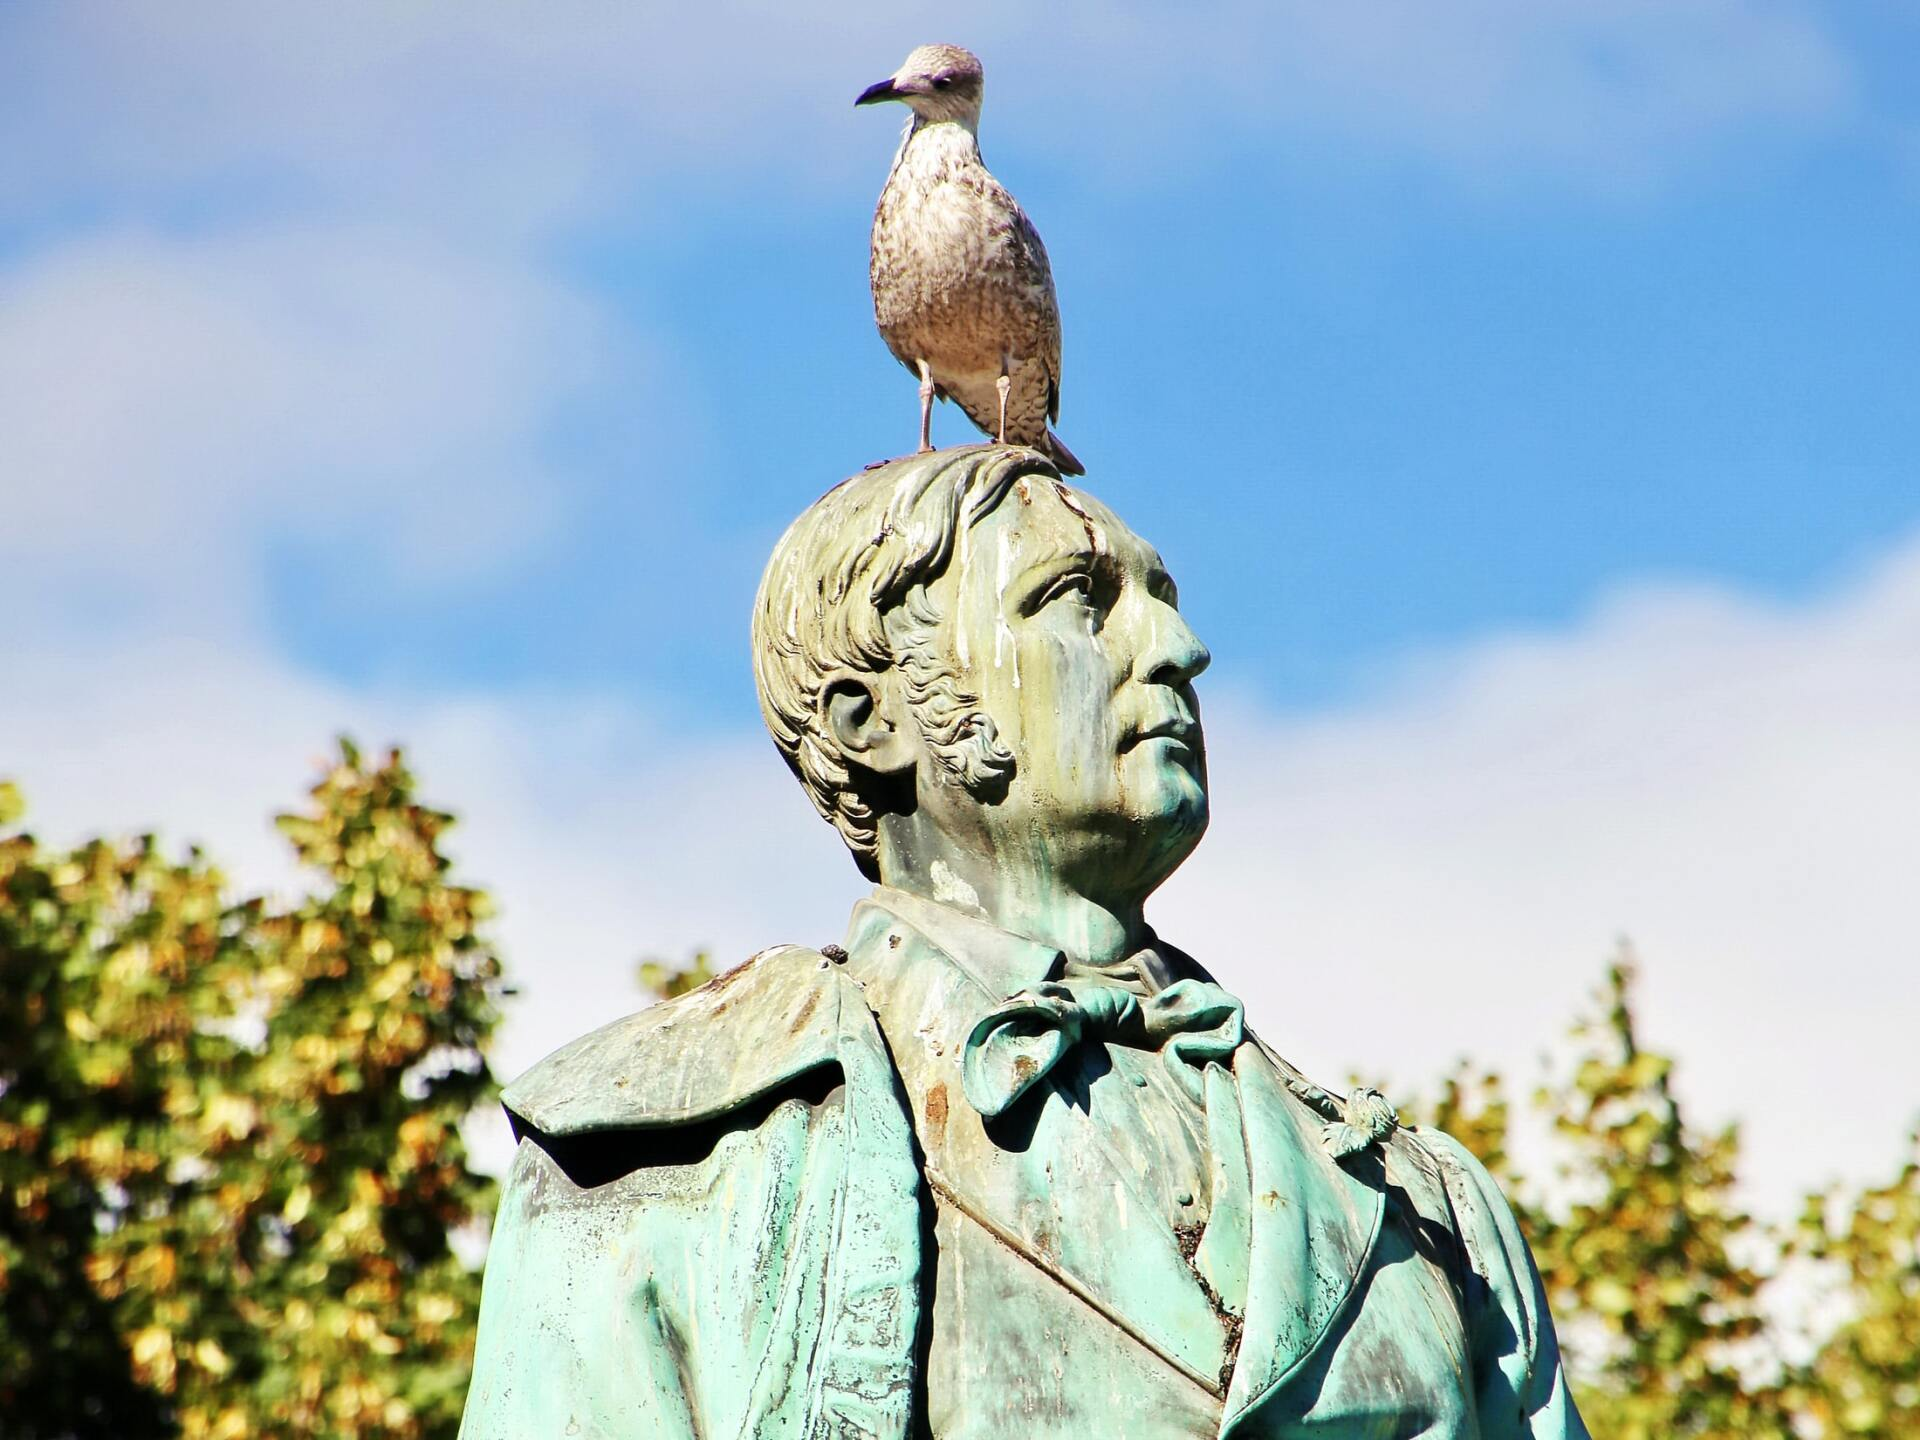 A pigeon on a statue